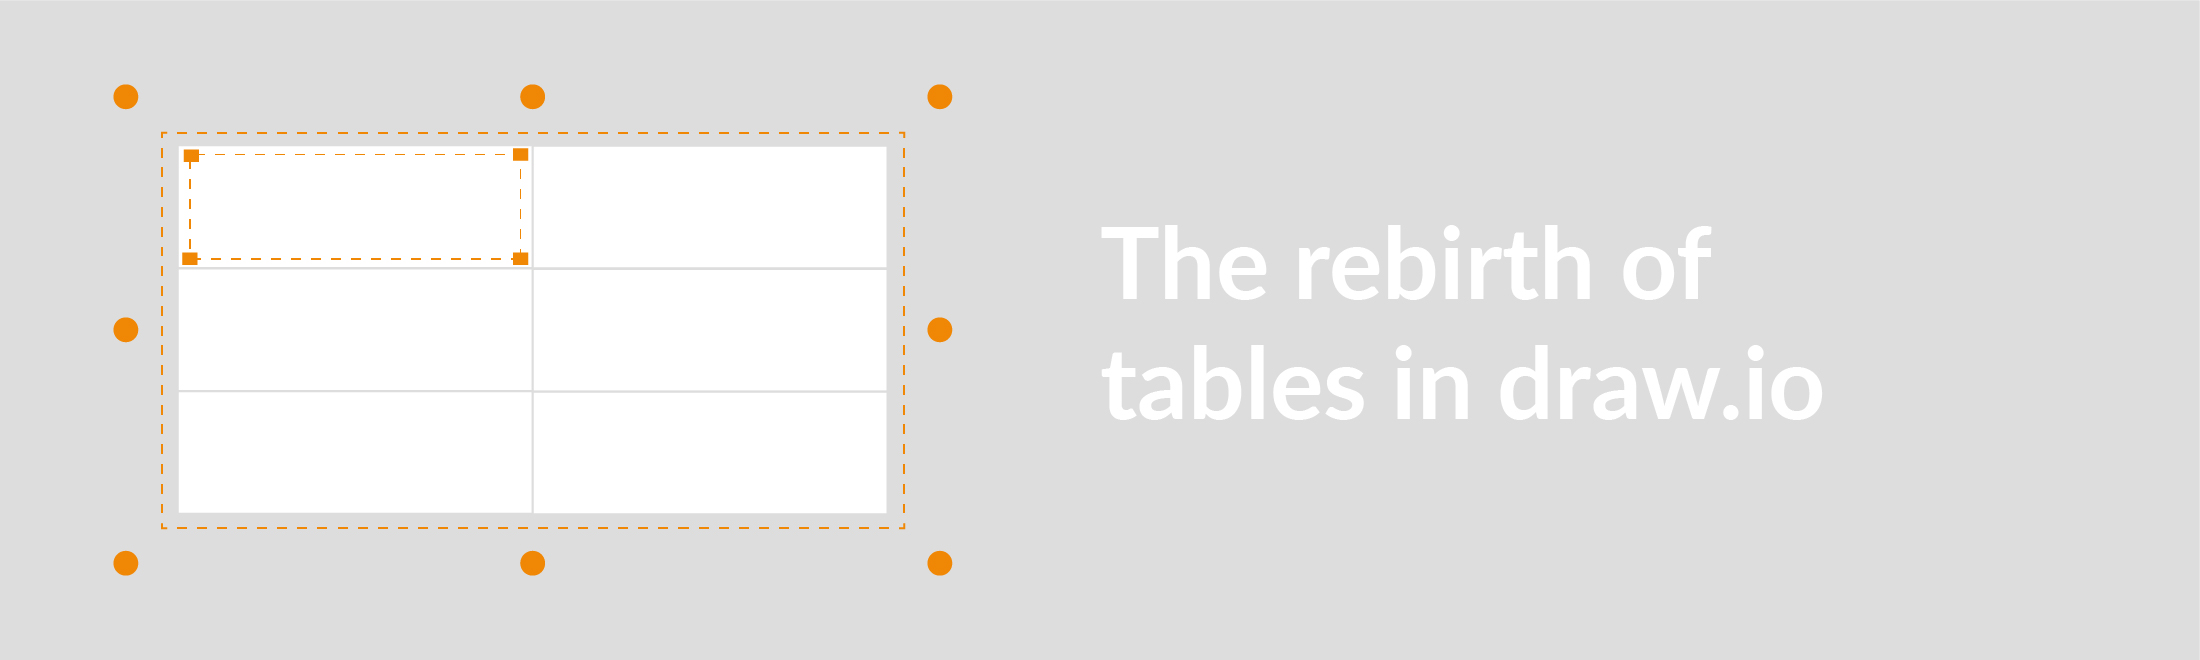 Tables in draw.io got a makeover